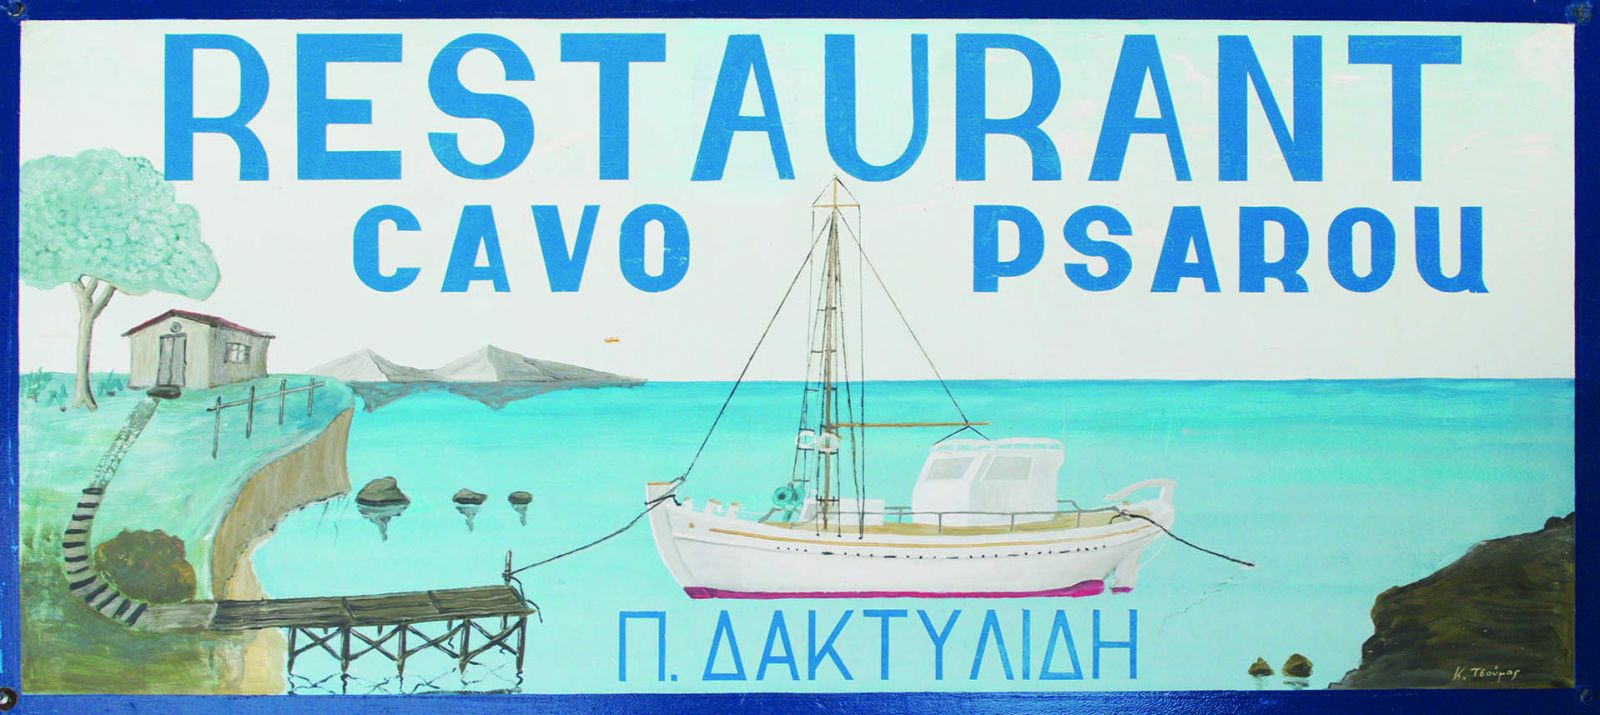 CAVO PSAROU Restaurant - beach bar